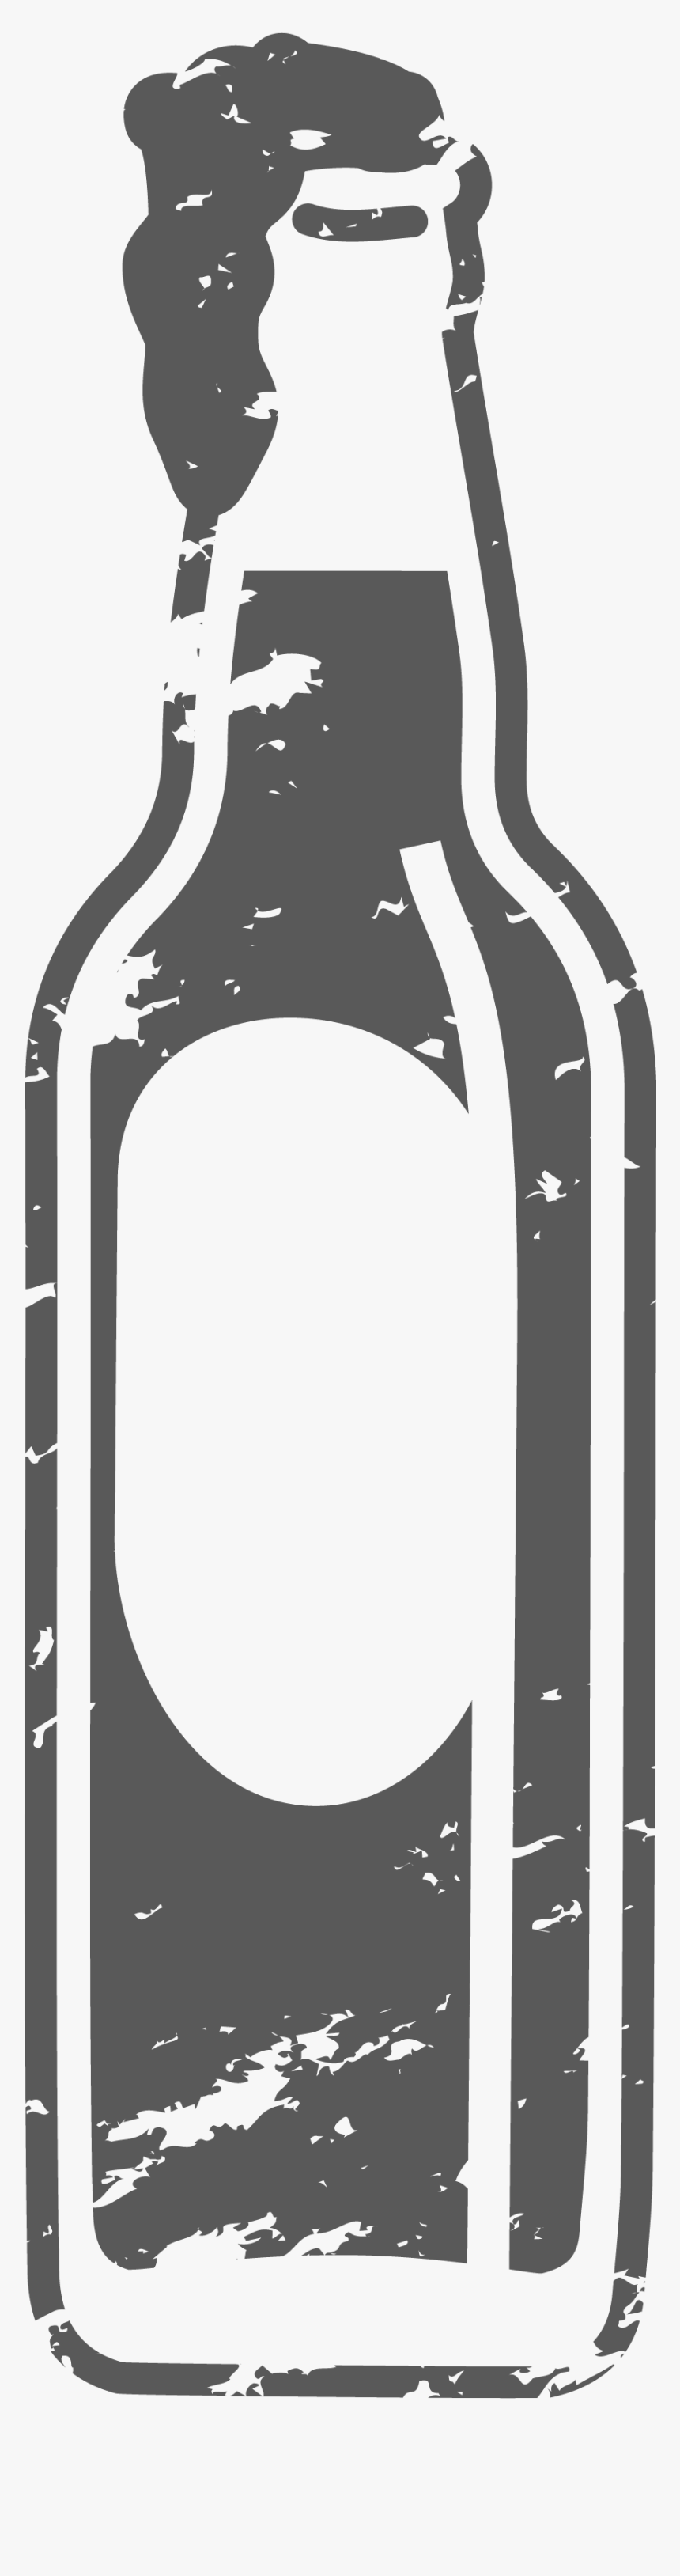 Black And White Beer Bottle Png, Transparent Png, Free Download